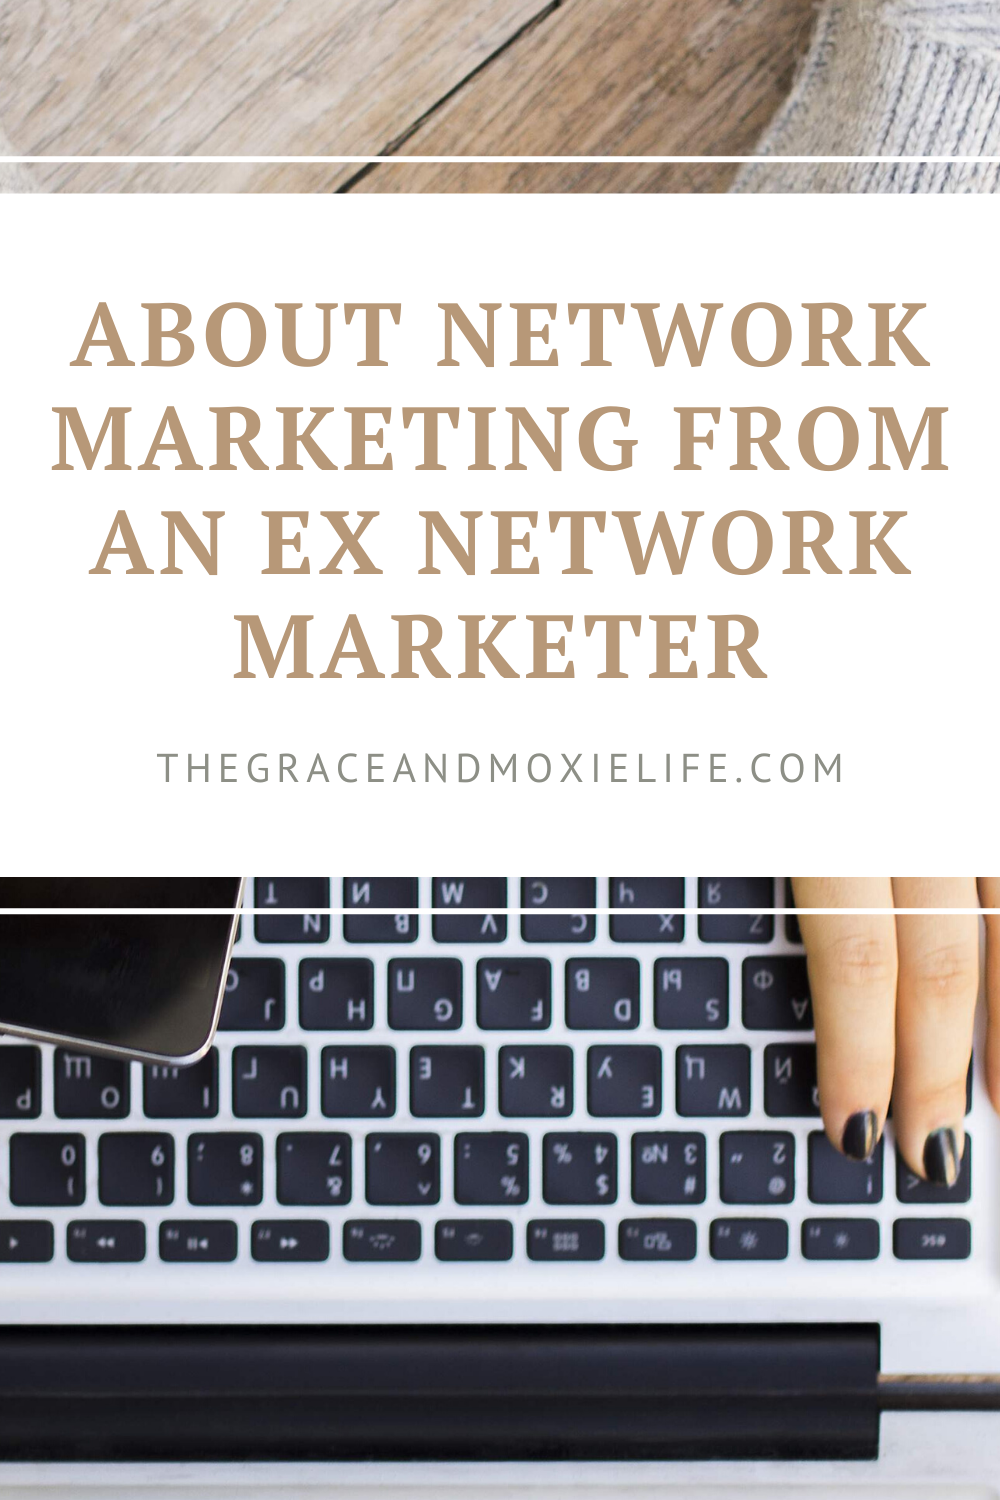 About Network Marketing From An Ex Network Marketer | The Grace and Moxie Life